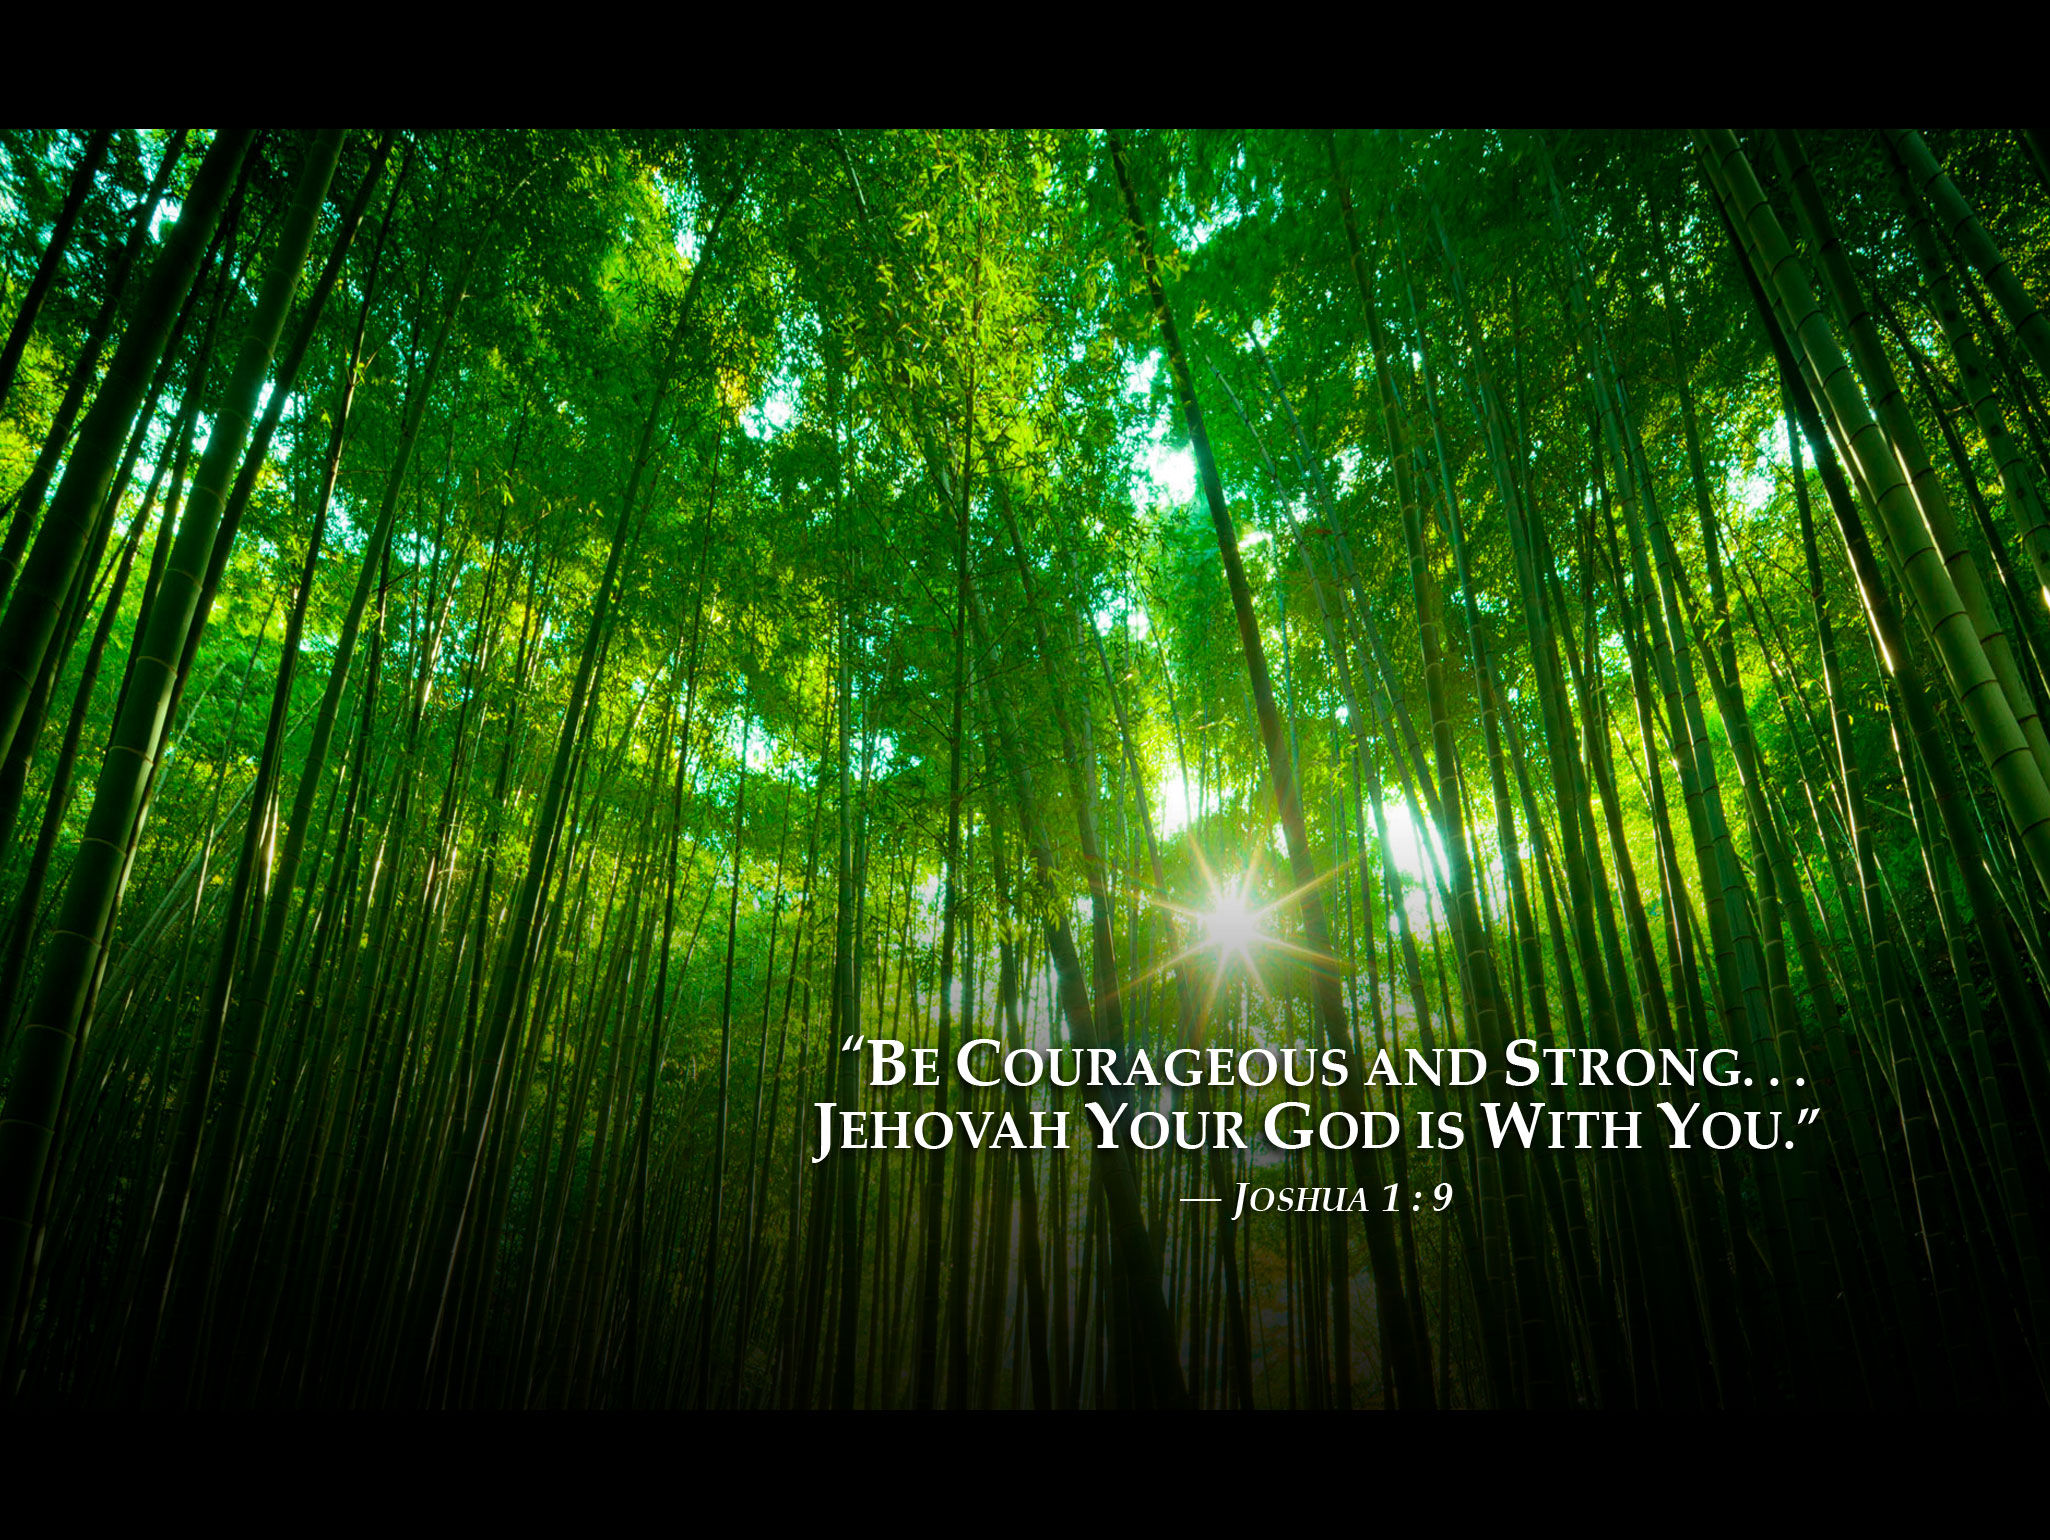 bambooforest 2013 jehovah witnesses yeartext for ipad ipa